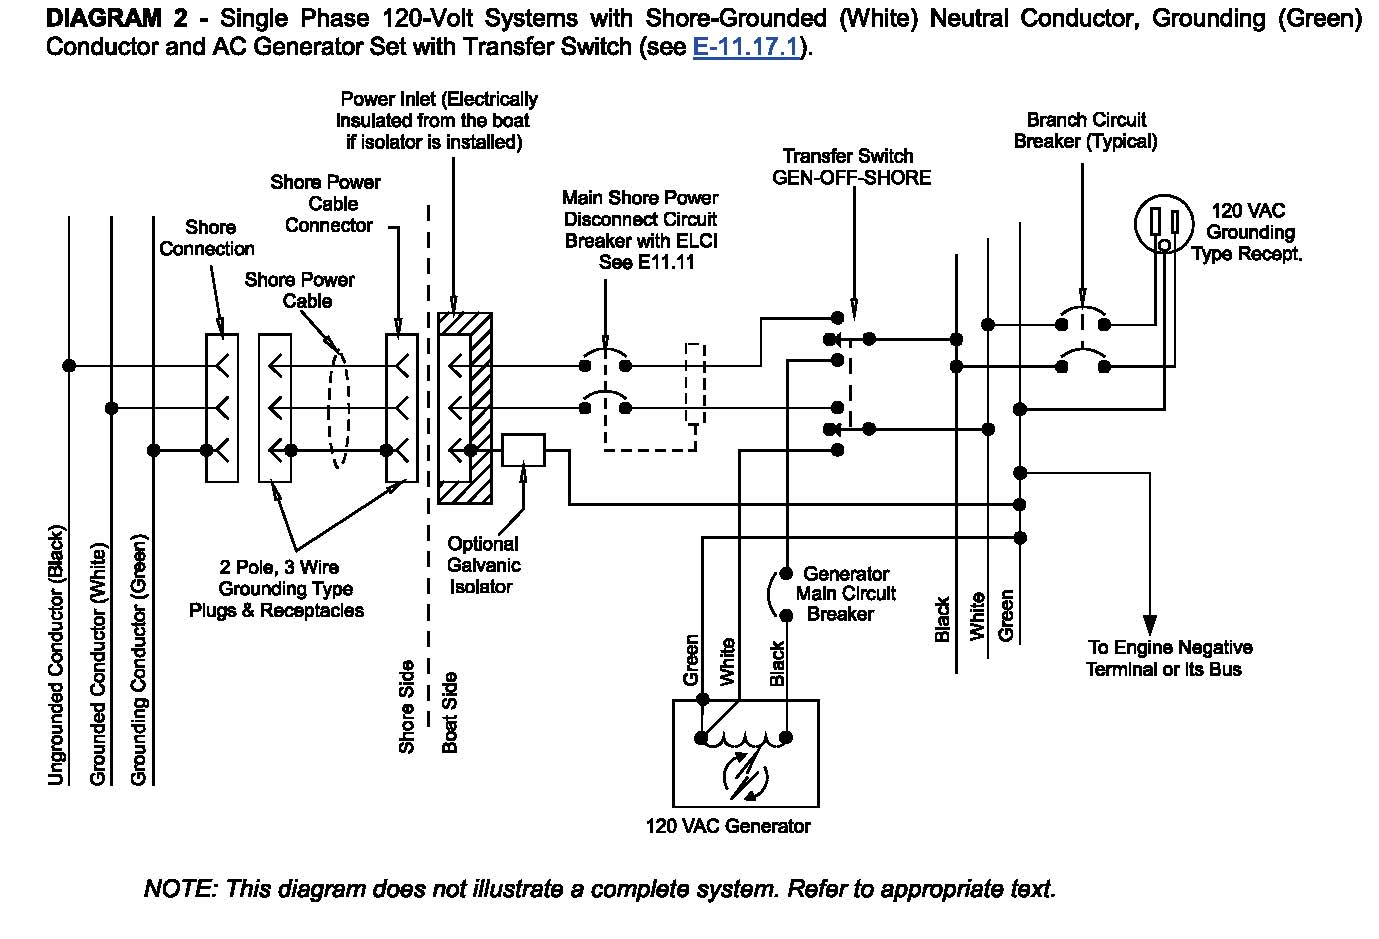 Click image for larger version  Name:E-11 Diagram 2.jpg Views:111 Size:145.4 KB ID:110185